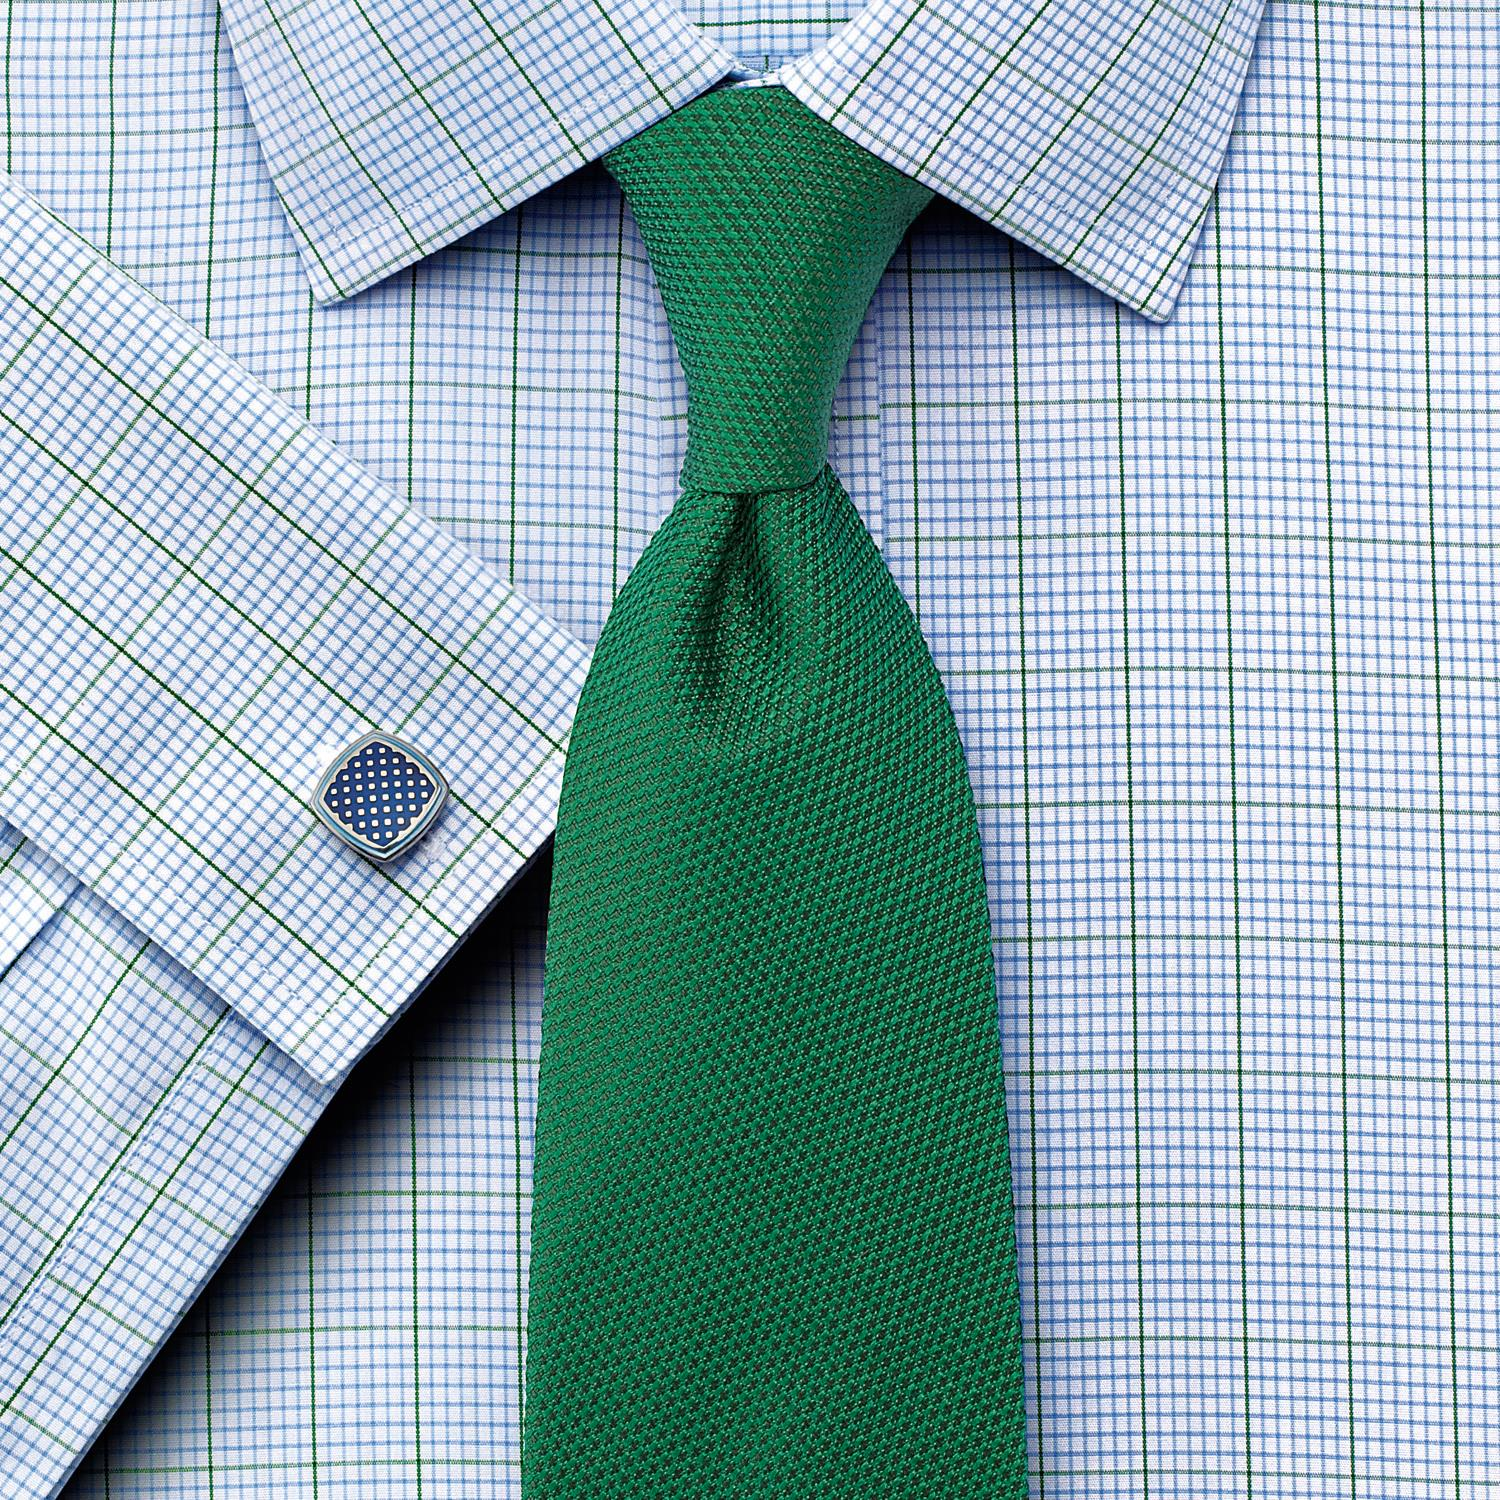 Slim Fit Non-Iron Check Green Cotton Formal Shirt Double Cuff Size 14.5/33 by Charles Tyrwhitt